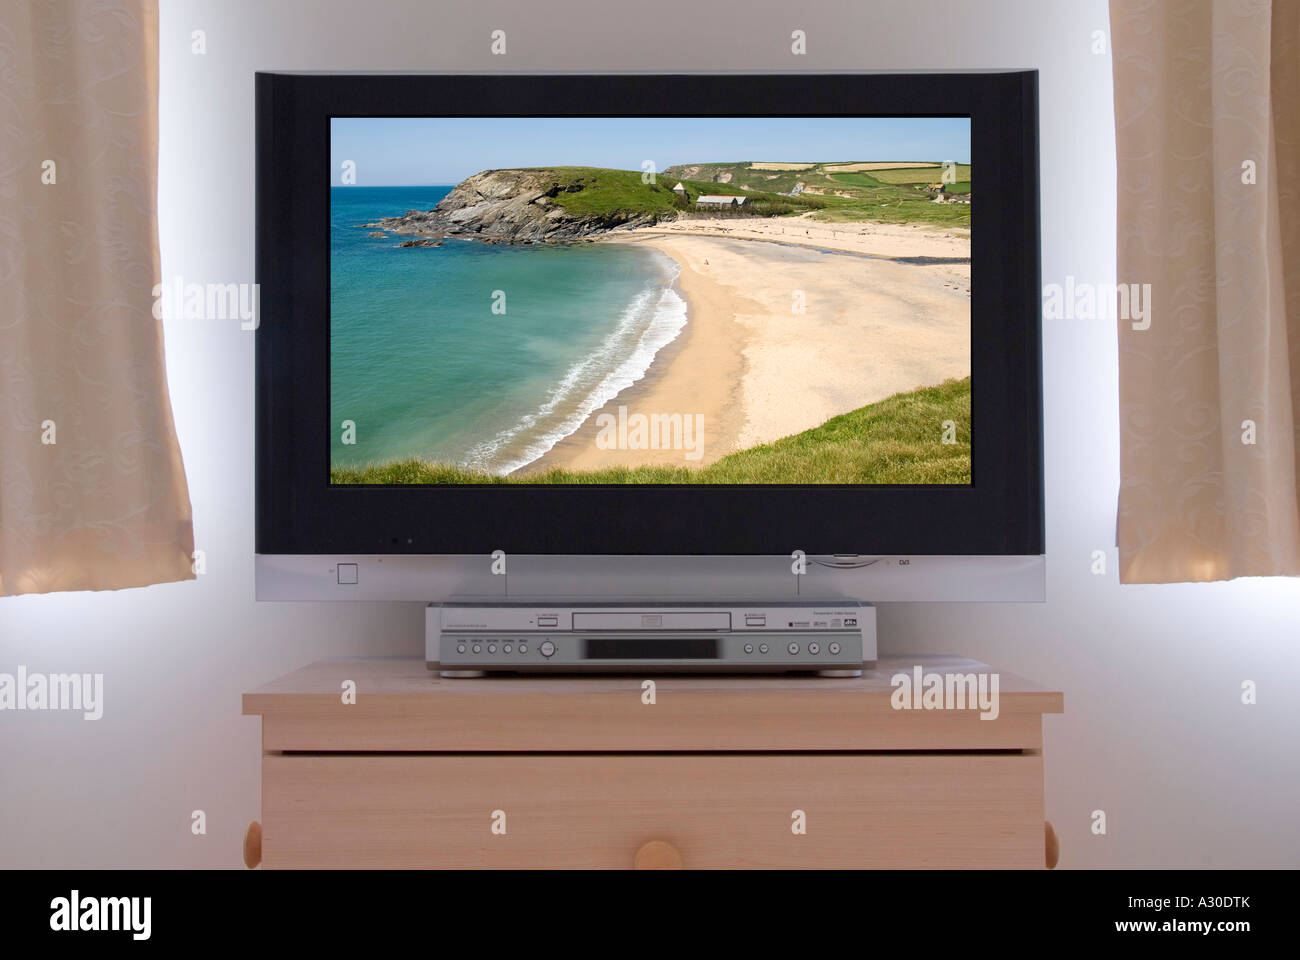 broadcast television colour tv set photos broadcast television colour tv set images alamy. Black Bedroom Furniture Sets. Home Design Ideas